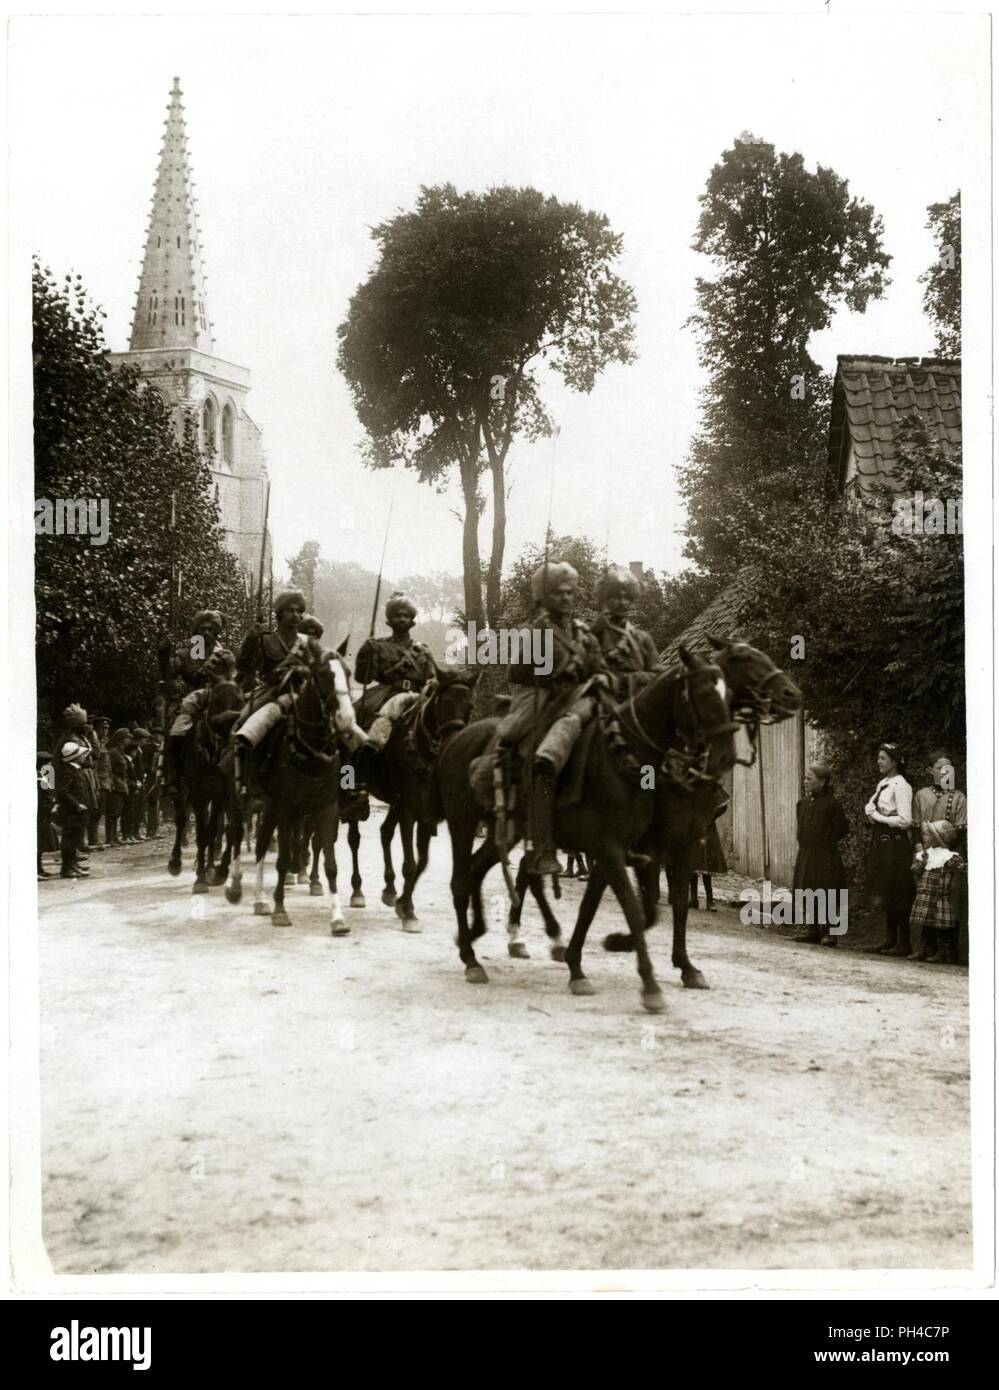 Indian cavalry marching through a French village [Estrée Blanche]. Photographer H. D. Girdwood. . - Stock Image